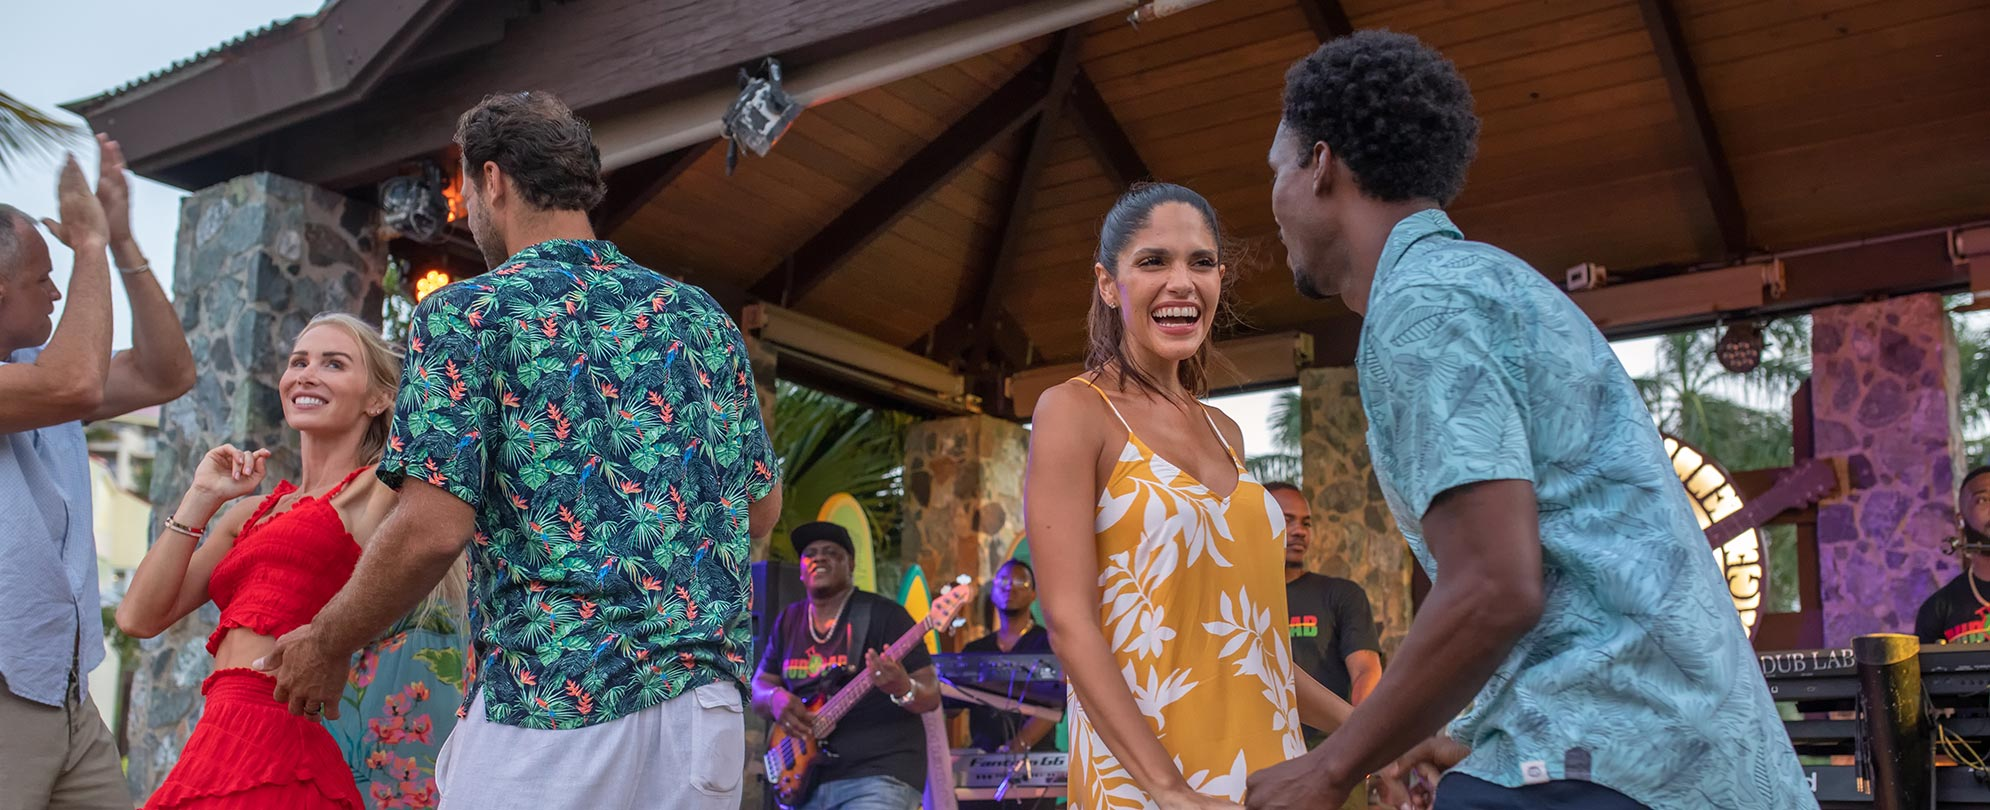 Men and women enjoy a warm winter vacation, dancing in front of a live band at a Margaritaville Vacation Club resort.